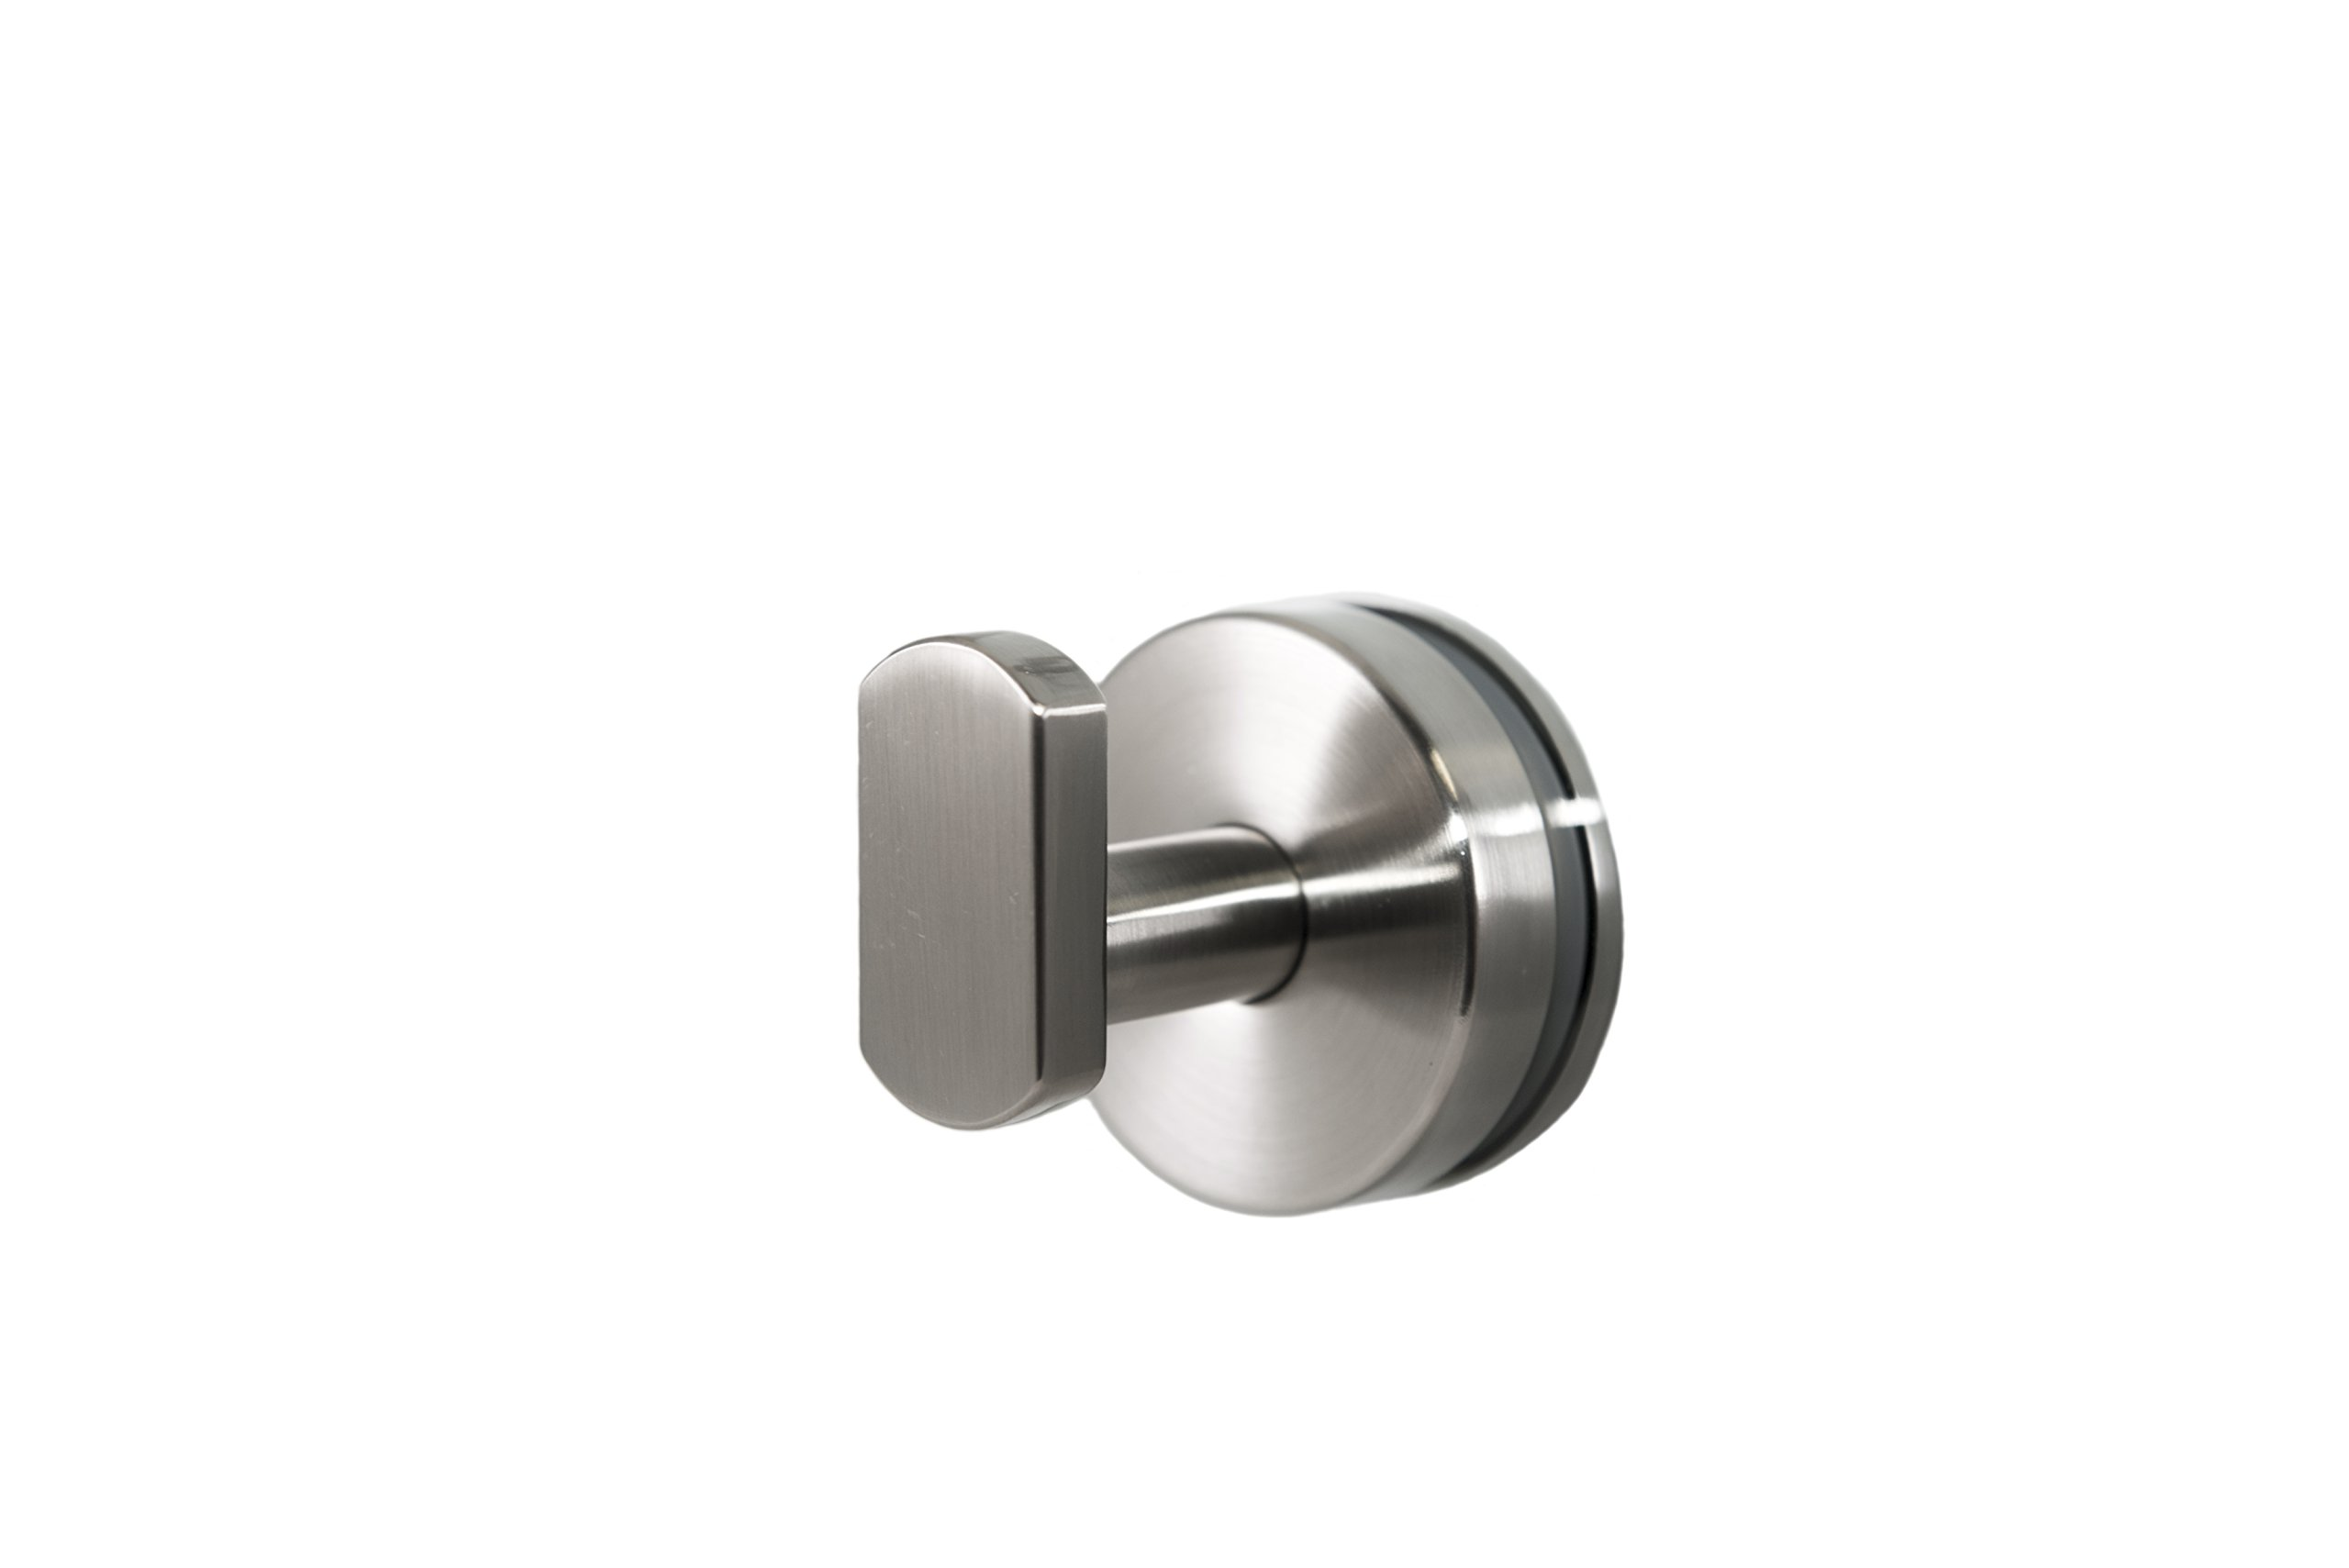 Preferred Bath Accessories 2000-BN-GM ANELLO Collection Robe Hook Glass Mounted, Brushed Nickel